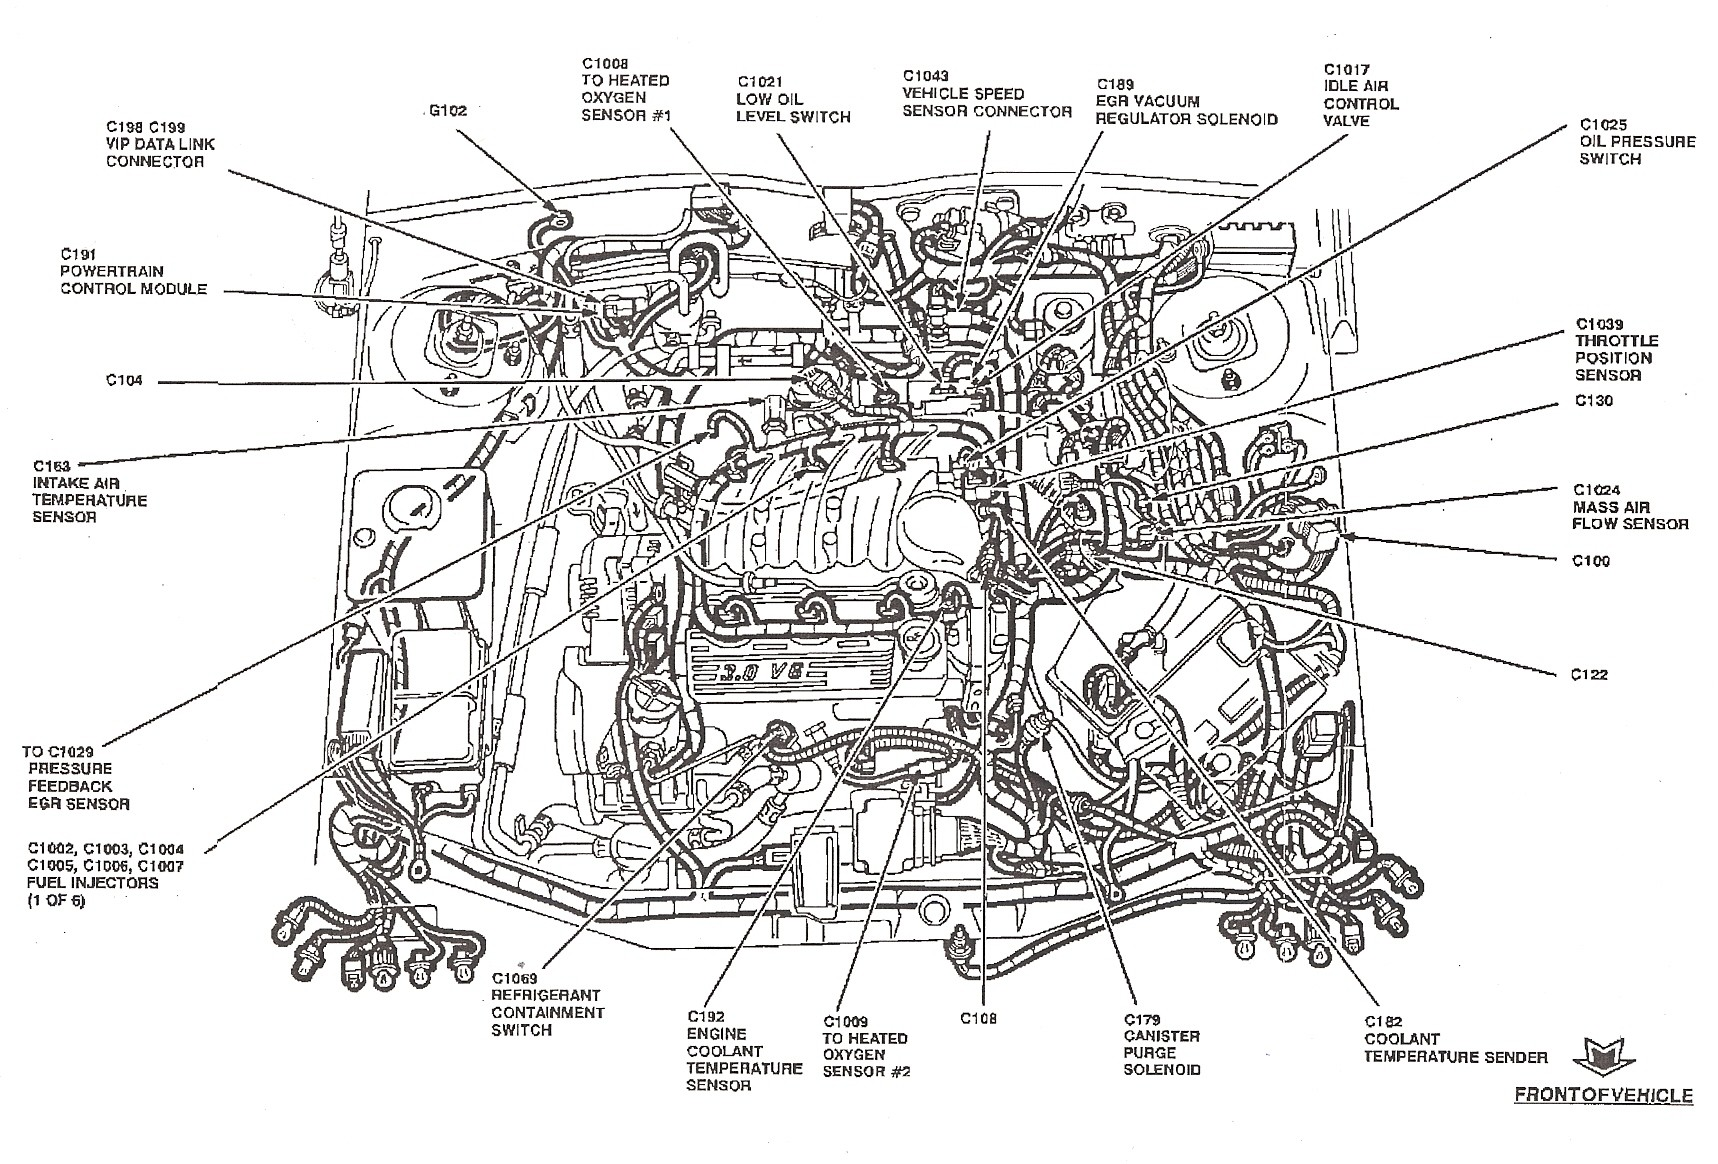 hight resolution of 2000 ford focus engine diagram wiring diagrams2000 ford focus se engine diagram wiring diagram sheet 2000